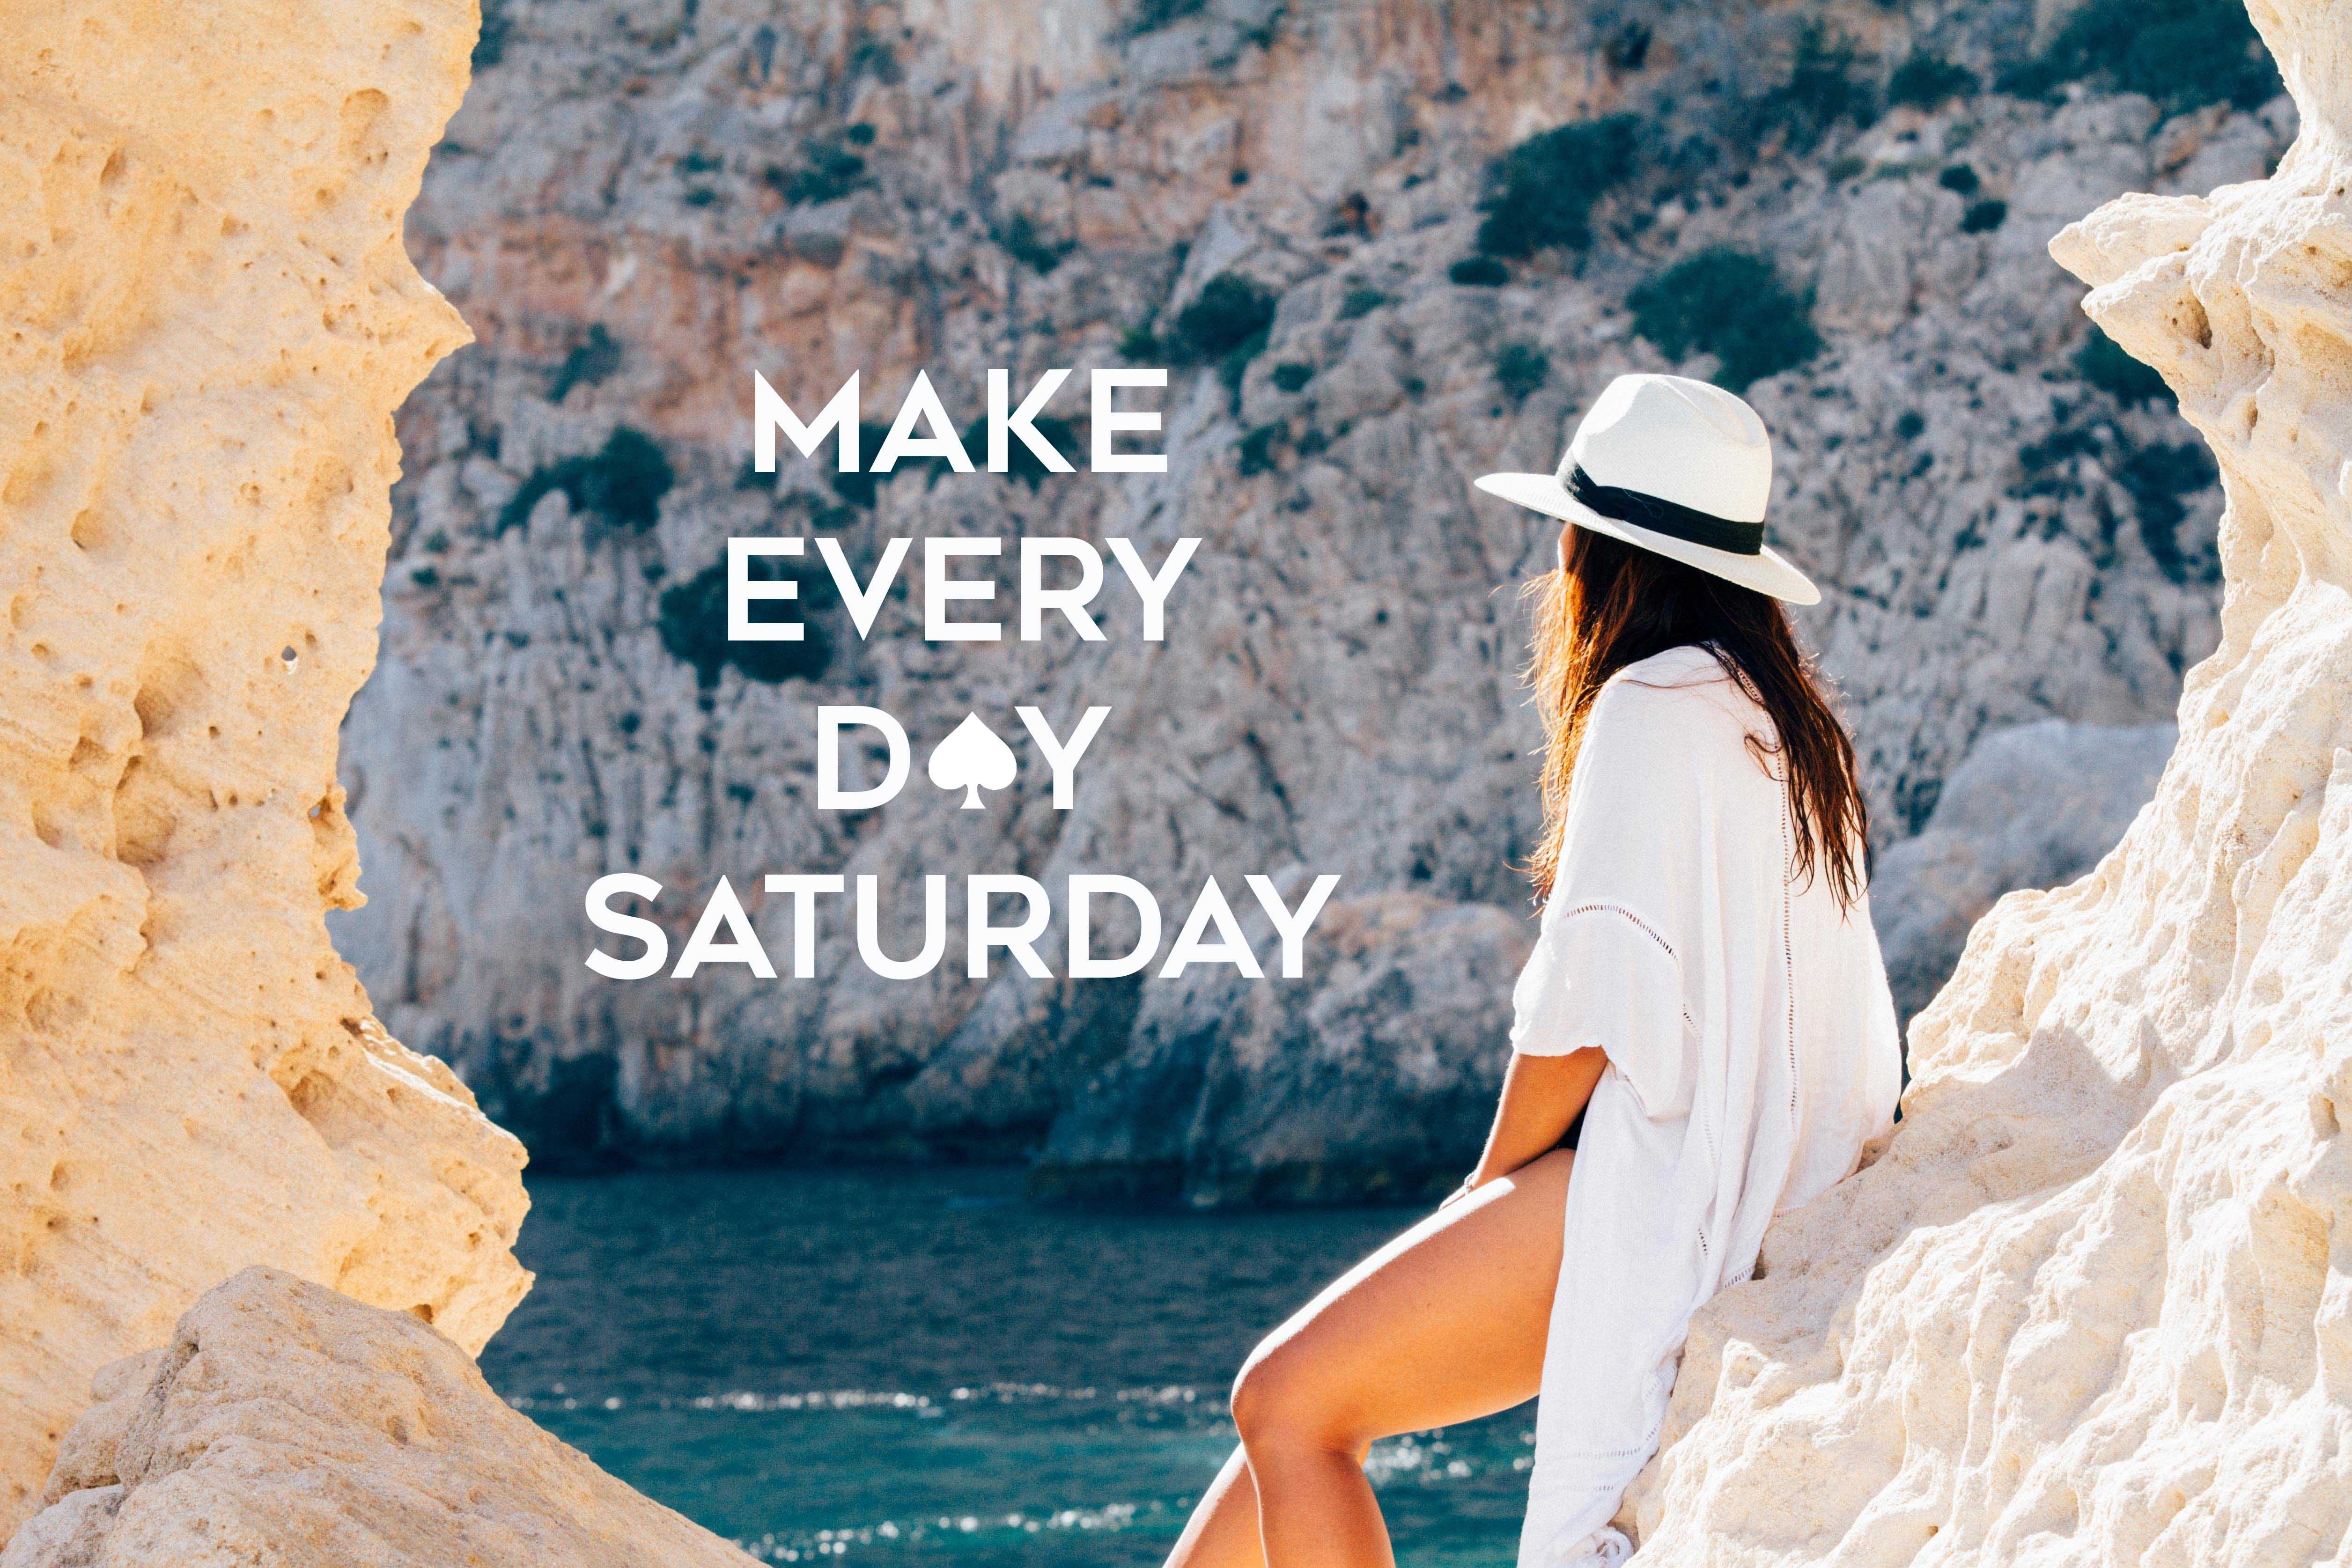 6 Make every day Saturday. Kate Spade The Travel Women